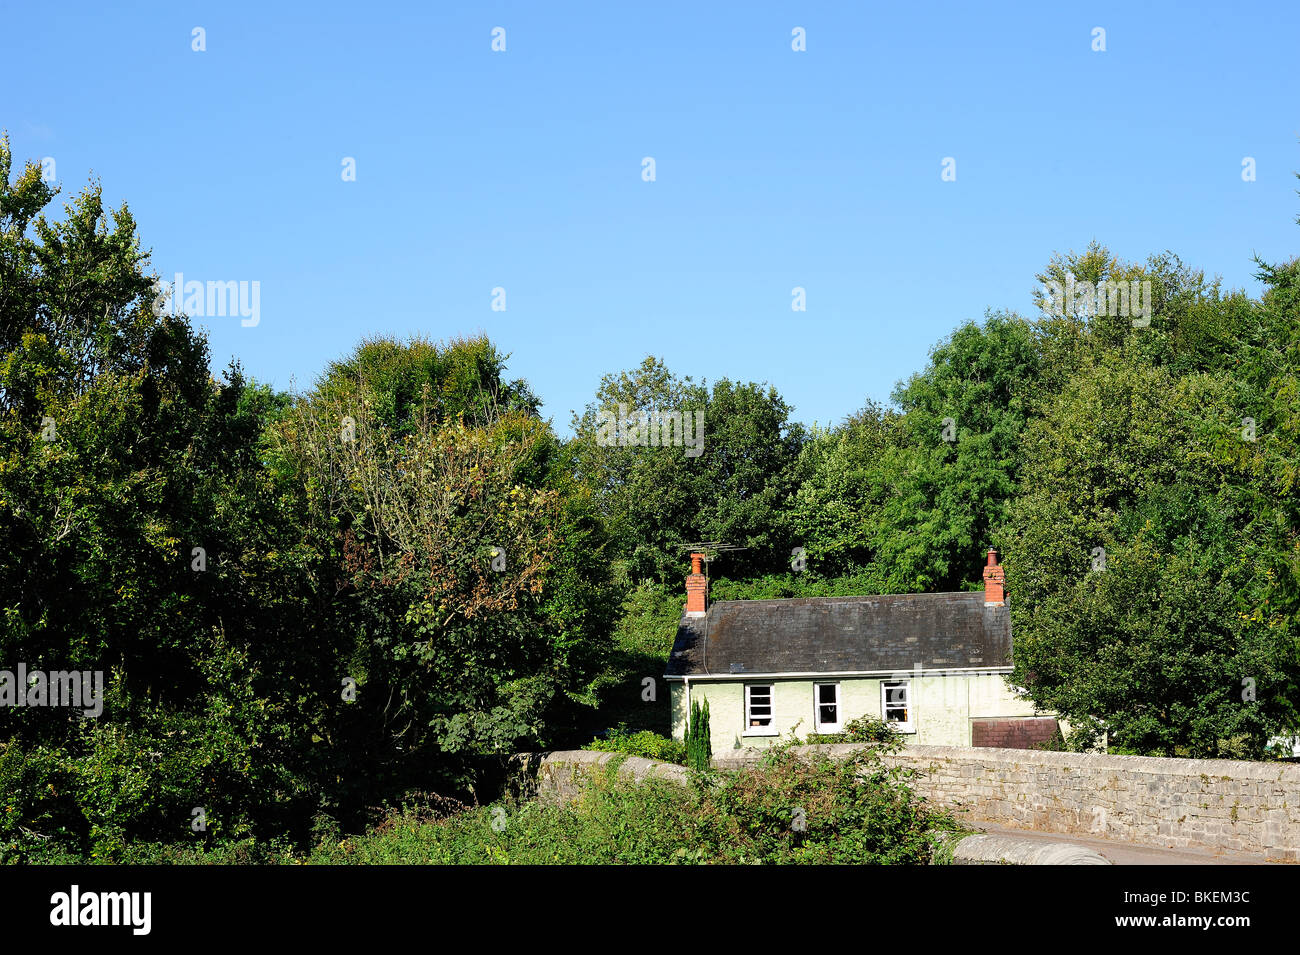 A tiny country cottage, completely surrounded by greenery, under a summer sky. Space for text in the sky. Stock Photo